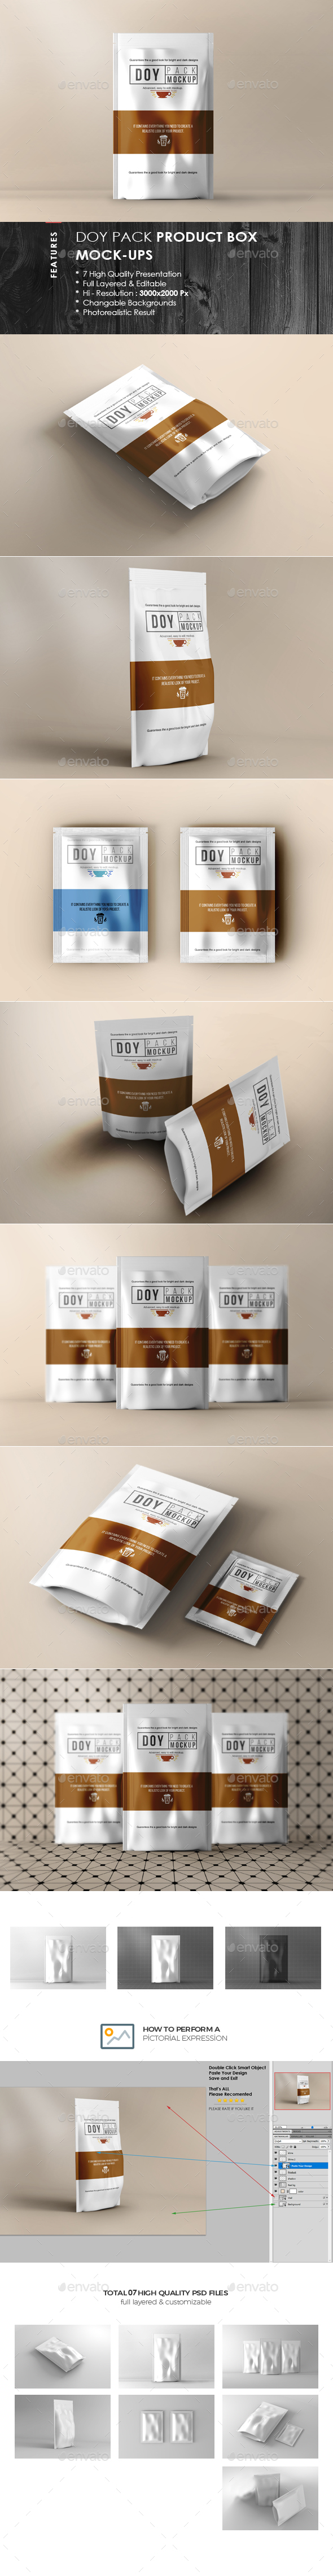 Doypack Package Mock-Up - Food and Drink Packaging